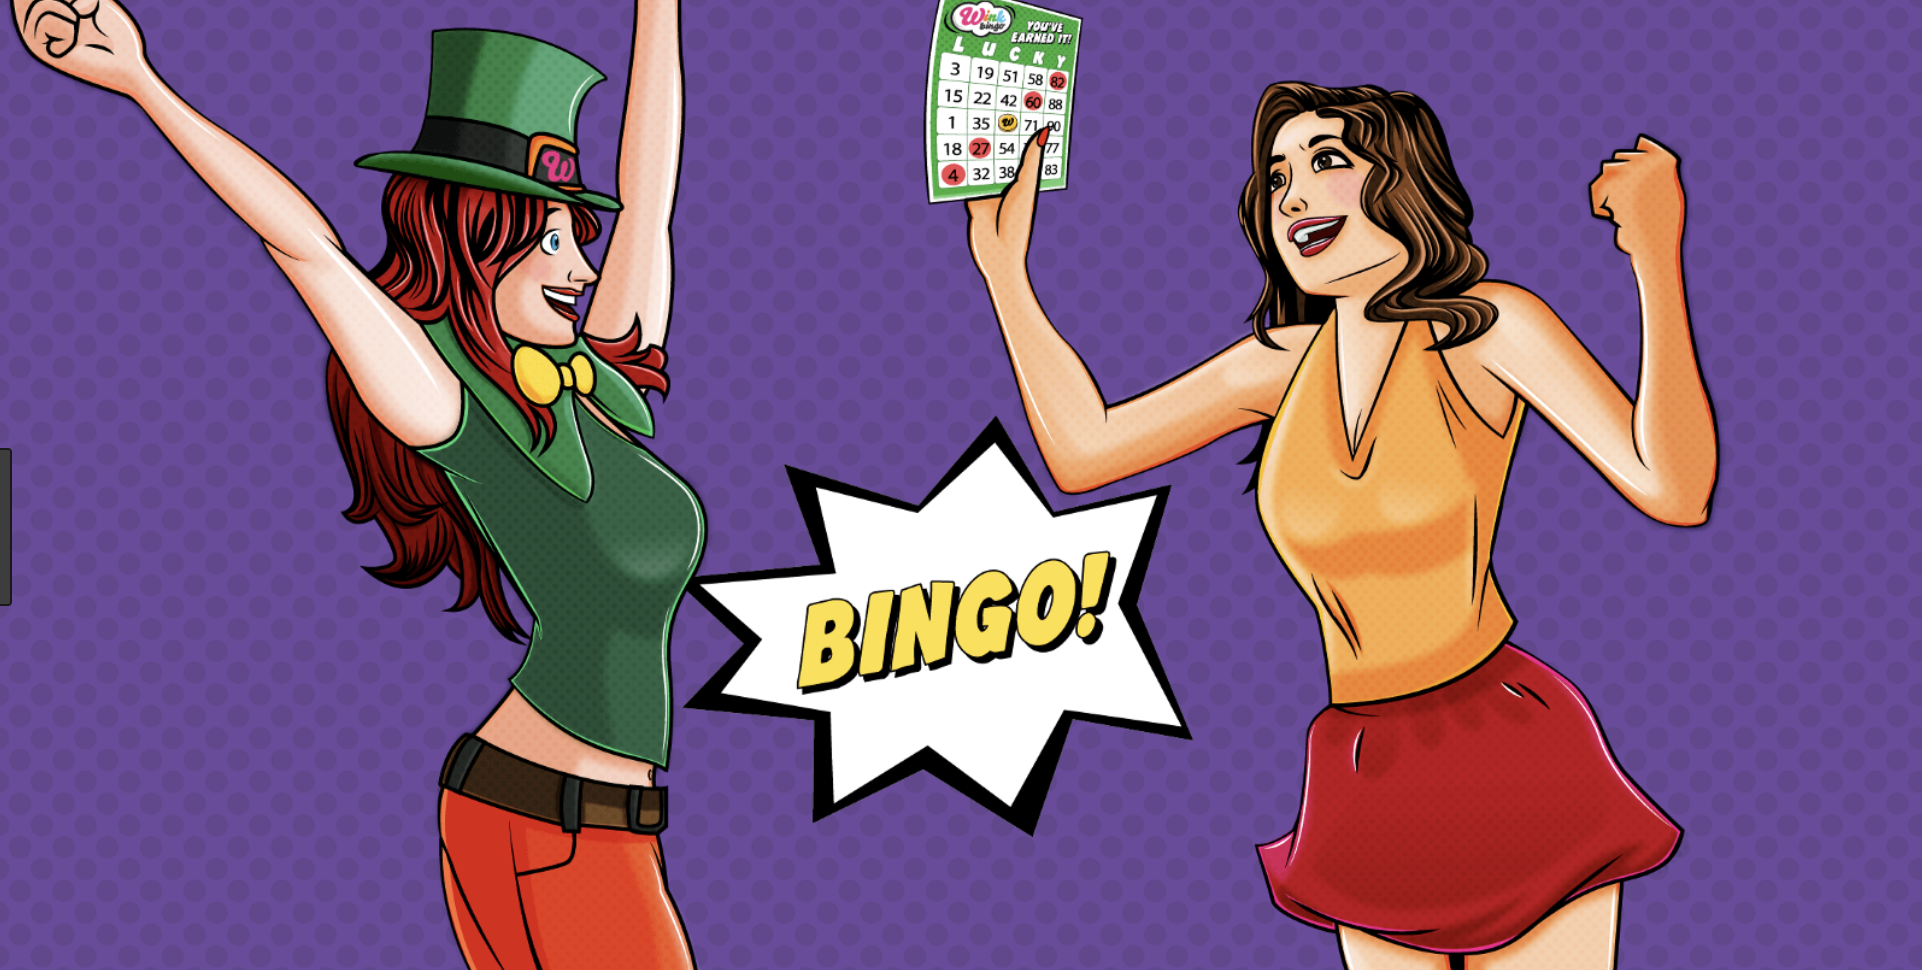 Latest Bingo News - Top 3 new online bingo of 2019